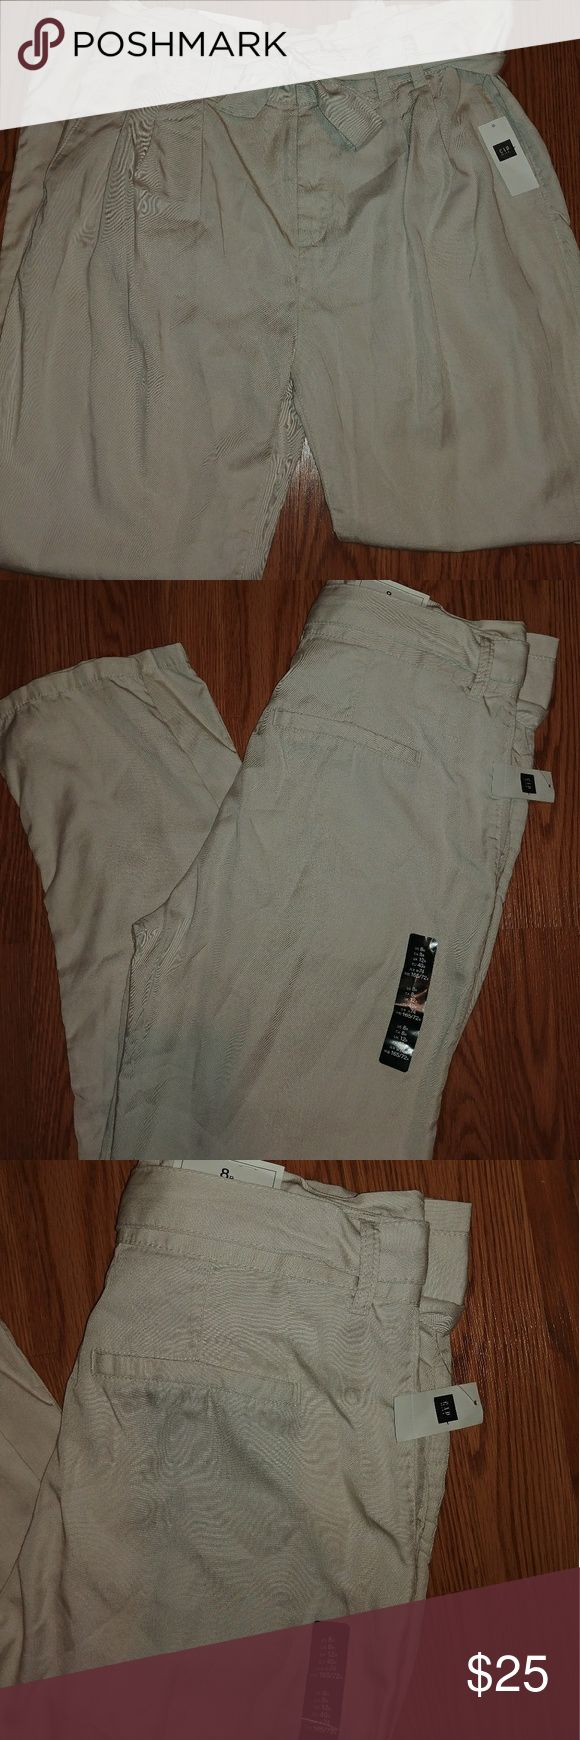 NWT🌸 GAP Trousers NWT GAP Trousers. I have the following: one size 2 in cream, one size 4 in cream, three size 6 in cream, one size 8 in olive and one size 12 in cream. I ship next day. GAP Pants